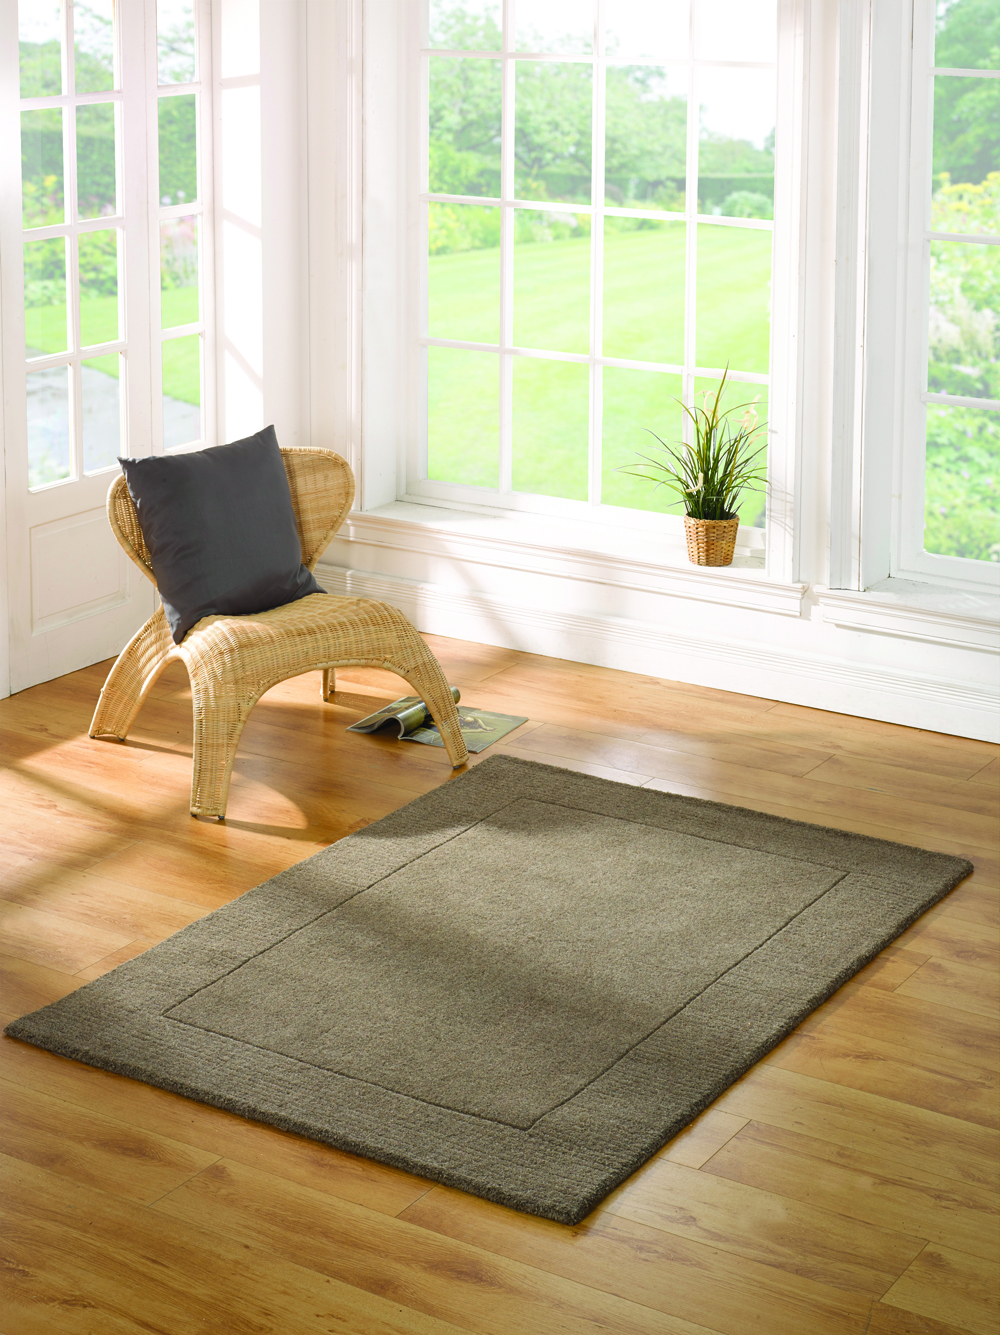 The Home Furnishings Company Tuscany Taupe Wool Rug 80x150cms  £69.00